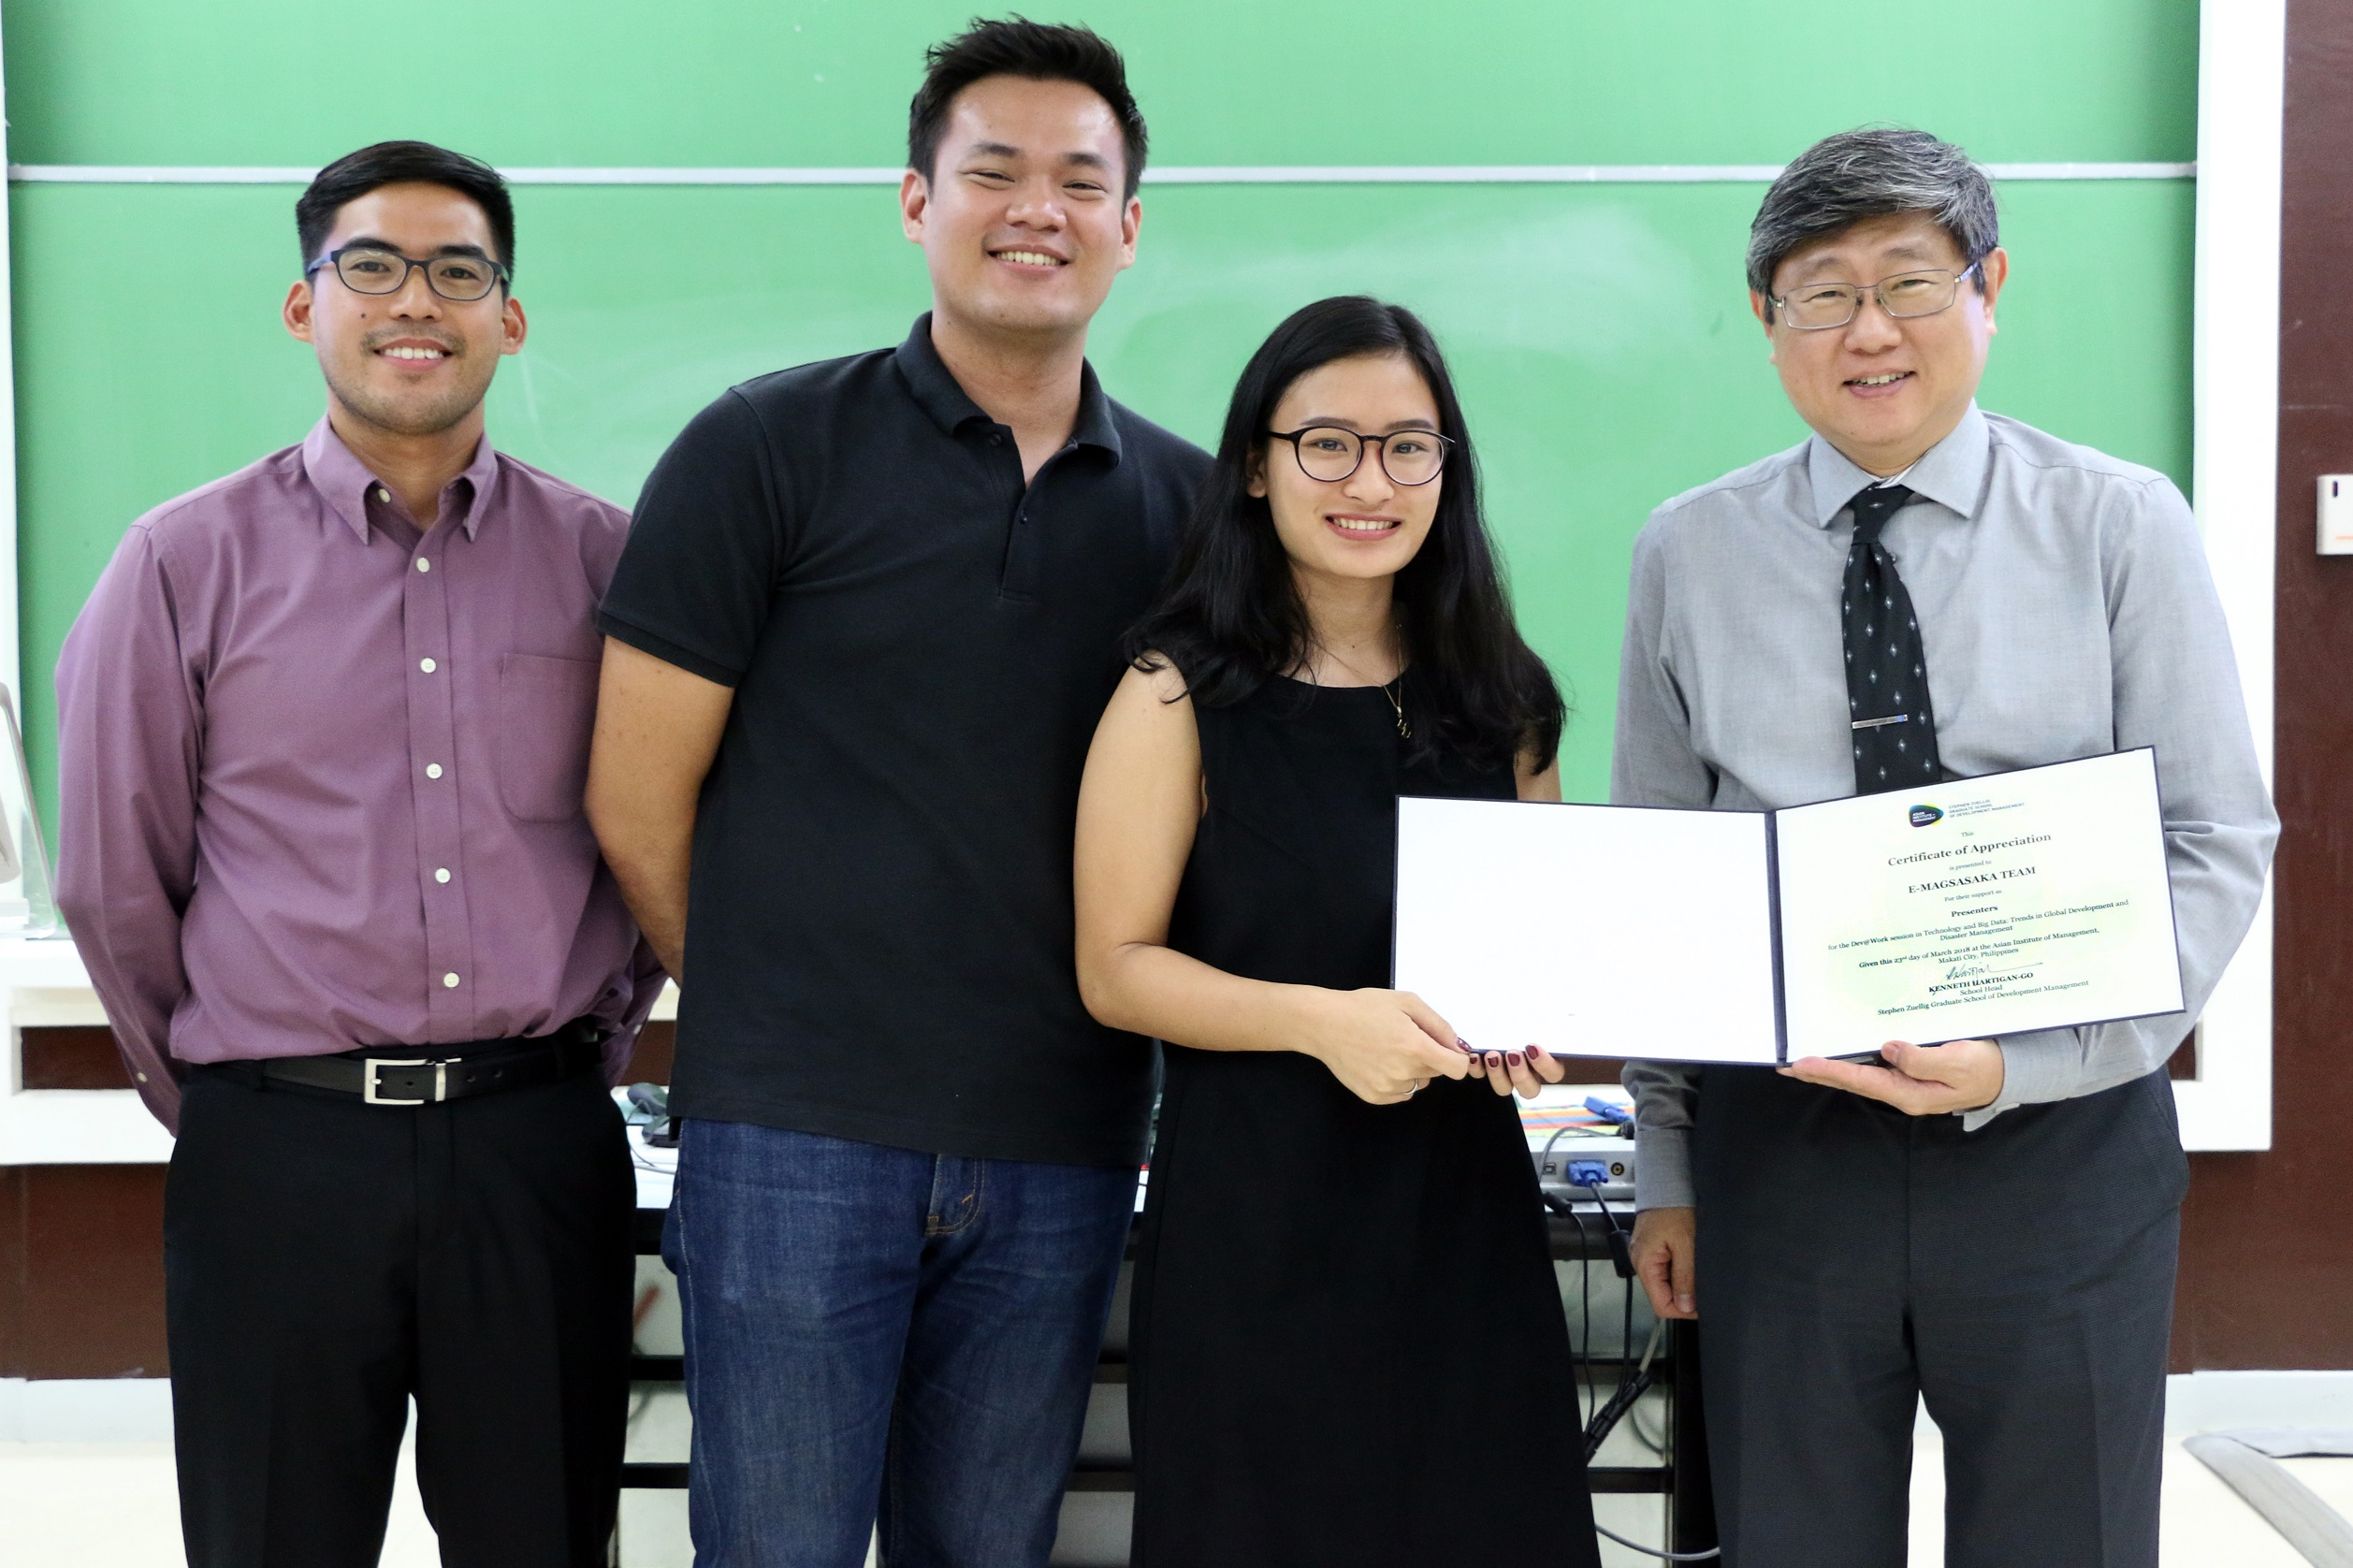 (From left) Jose Gabriel Dimalanta, Aaron David, Aiah Sarmiento, and Prof. Kenneth Hartigan-Go at the end of the Dev@Work session.